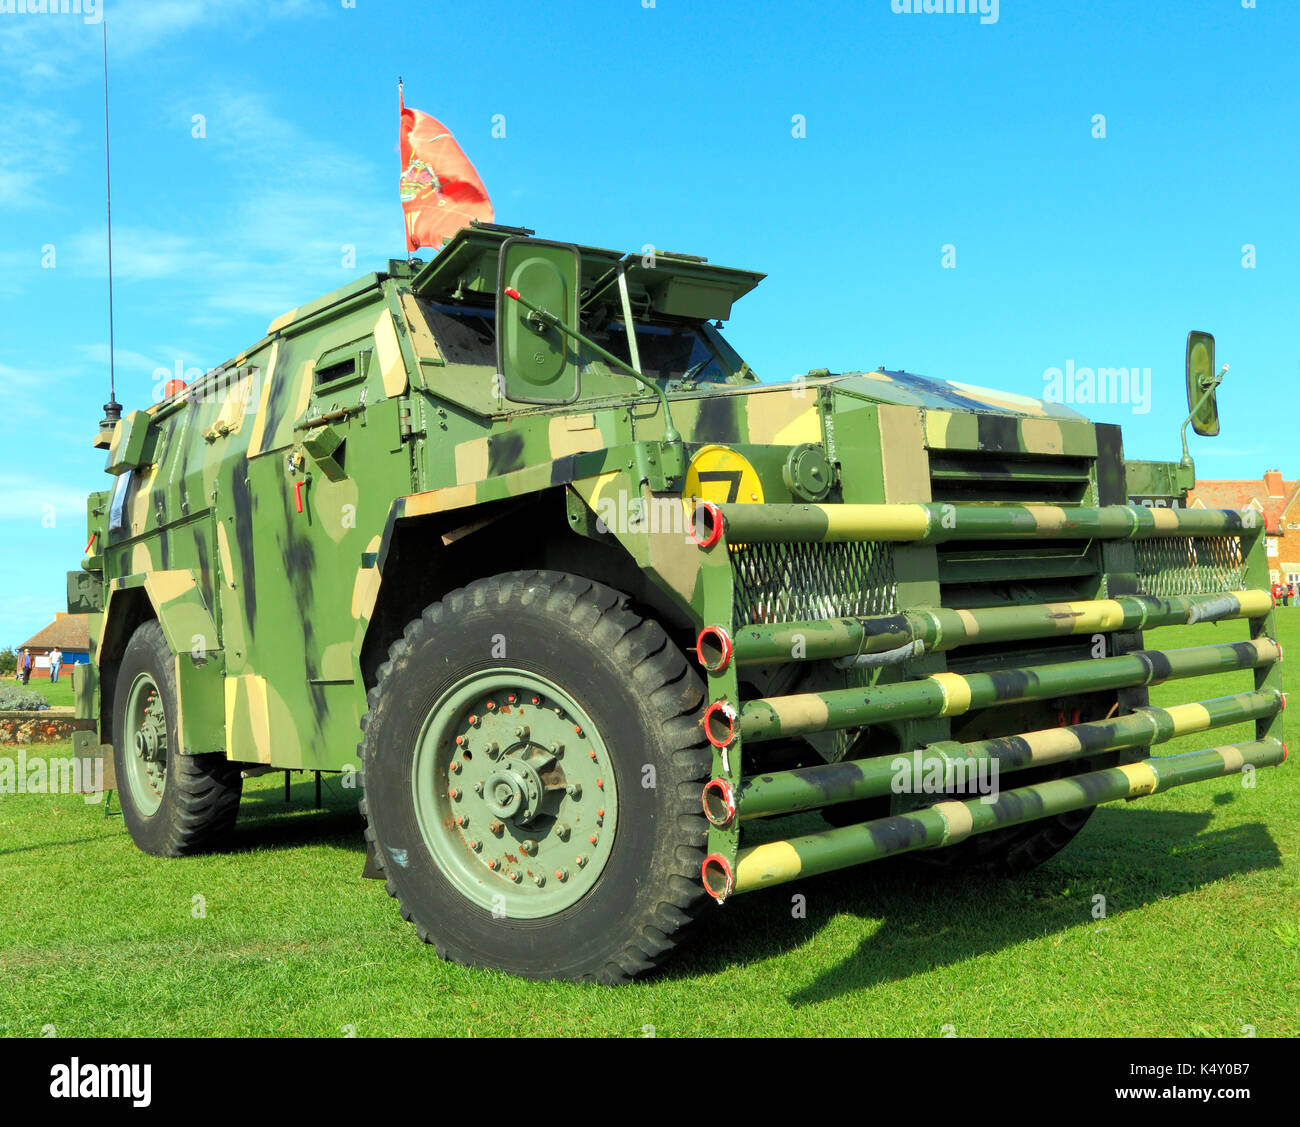 British Army, military vehicle, vintage, Humber Pig, 1954, deployed in Aden, Germany and N. Ireland, vehicles - Stock Image